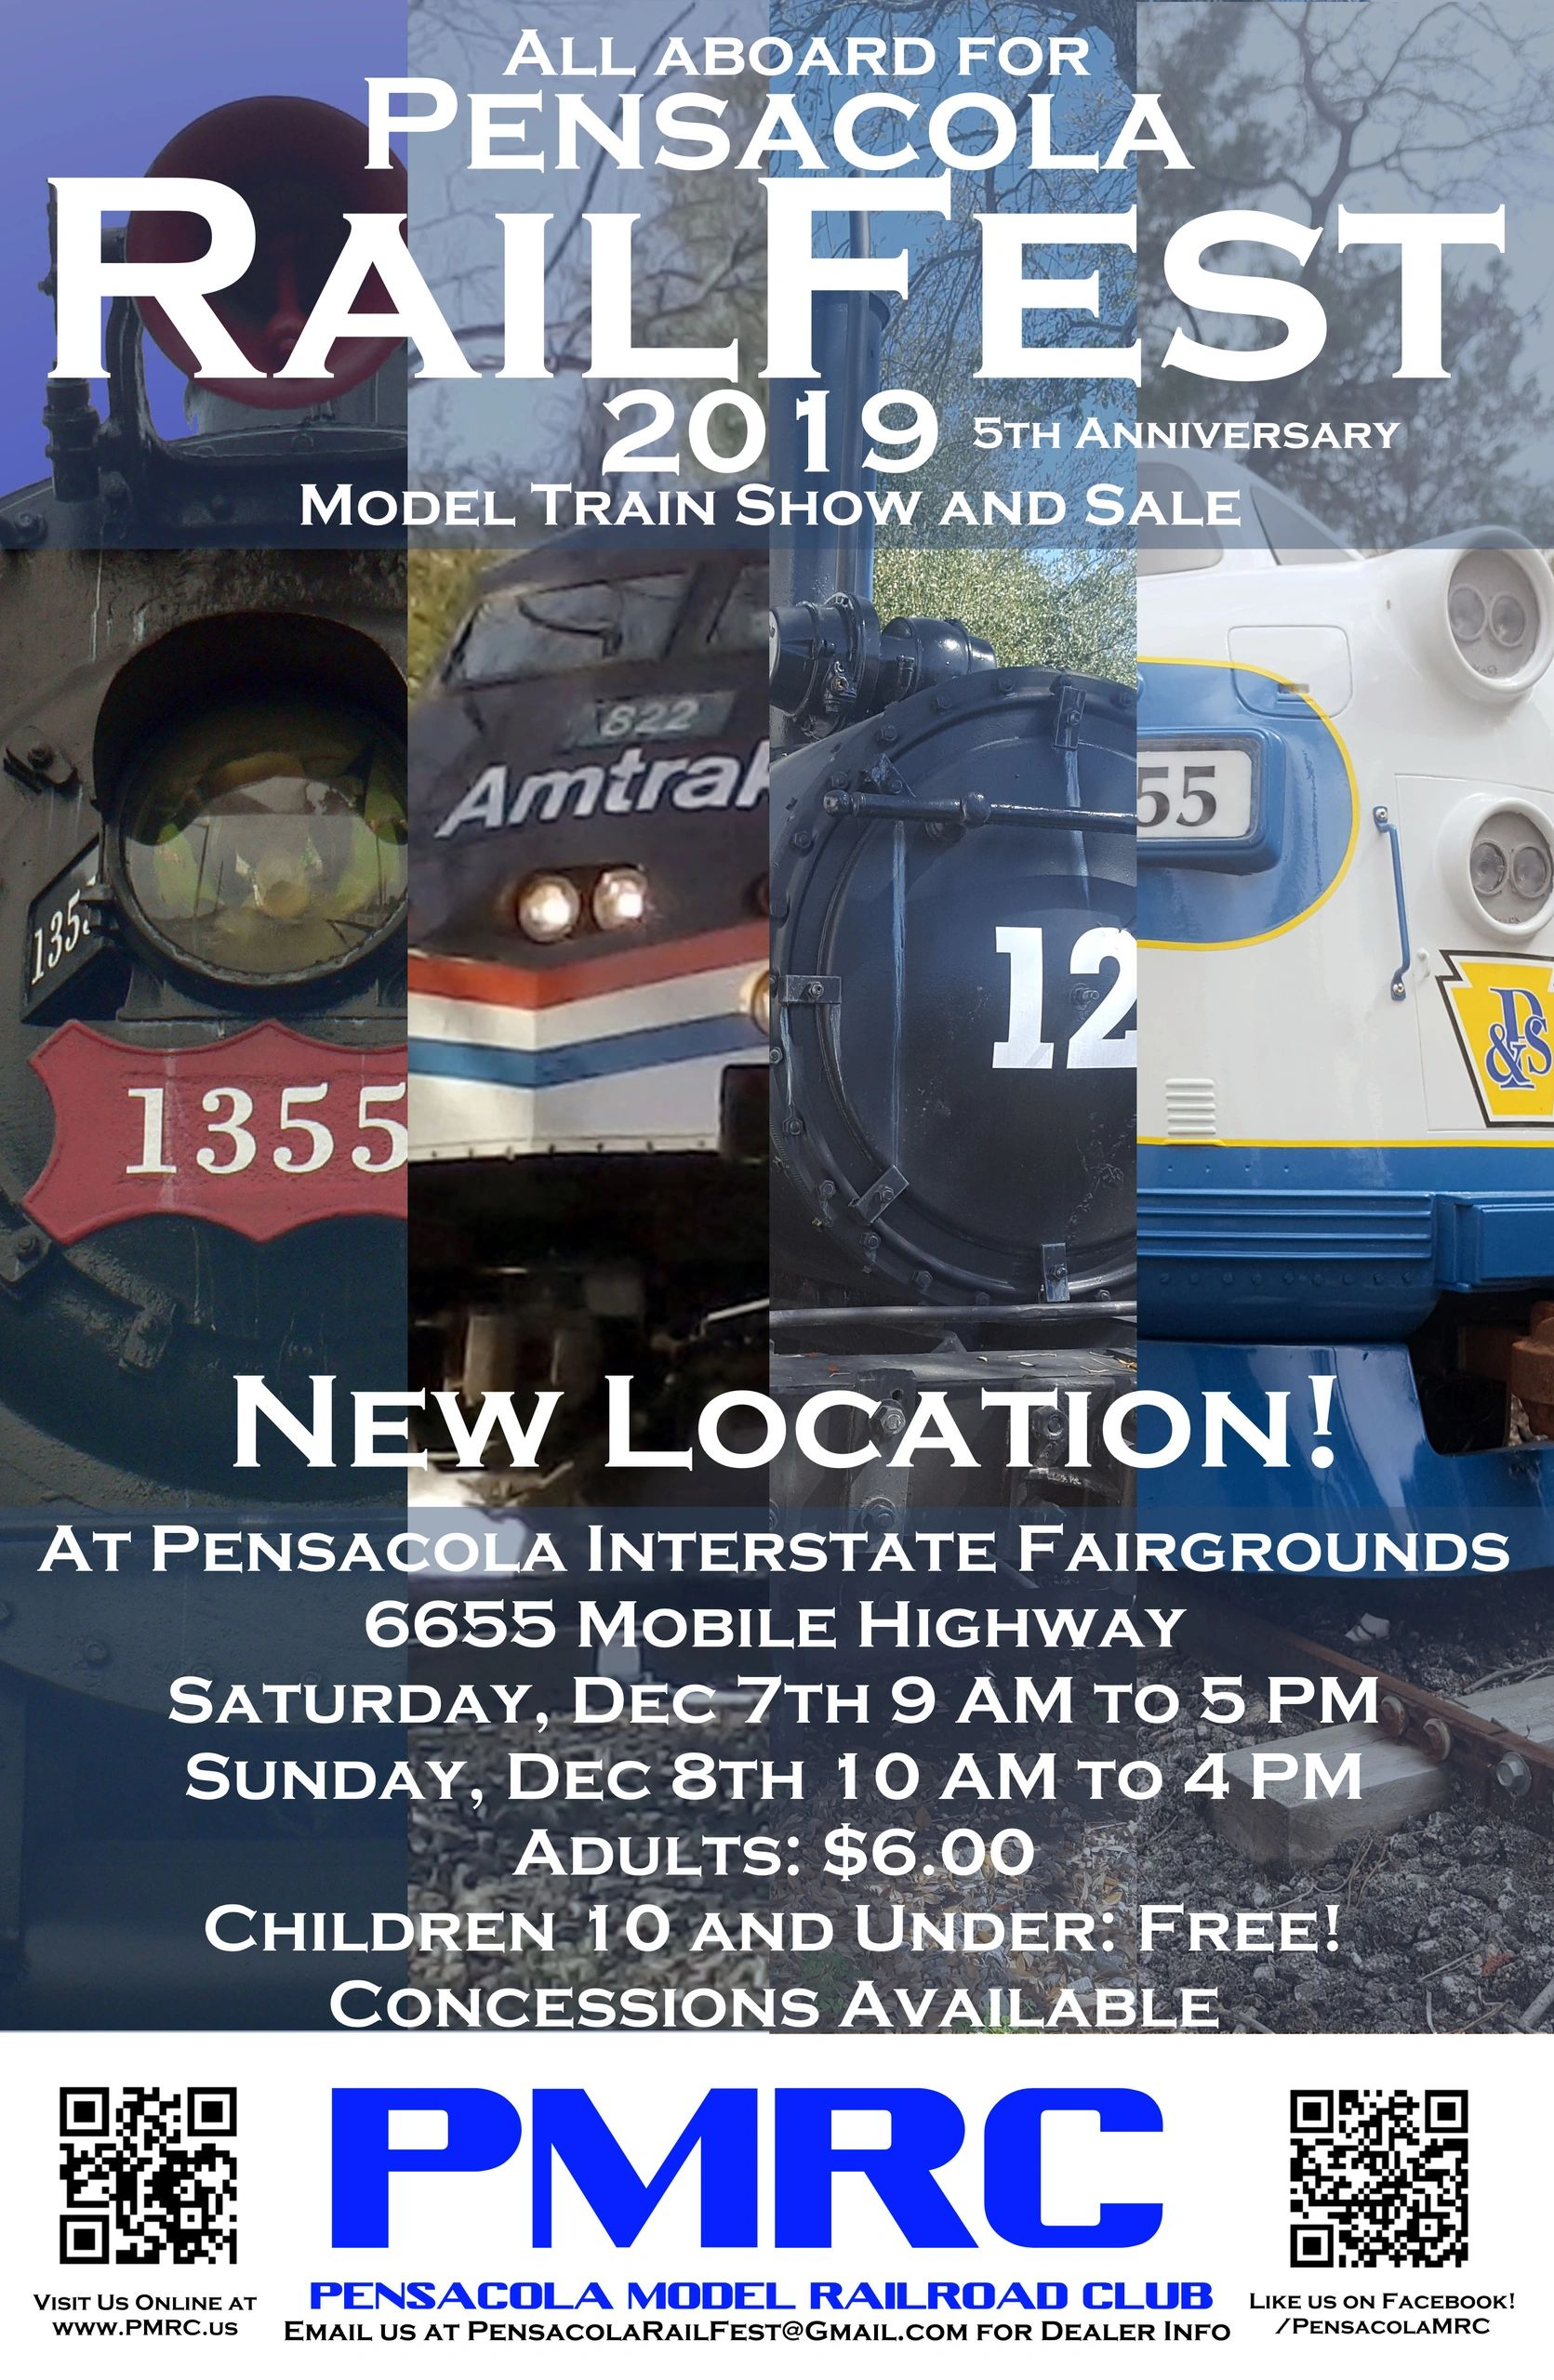 The 5th Anniversary Pensacola Railfest Model Train Show and Sale! ​All aboard for a weekend of fun w